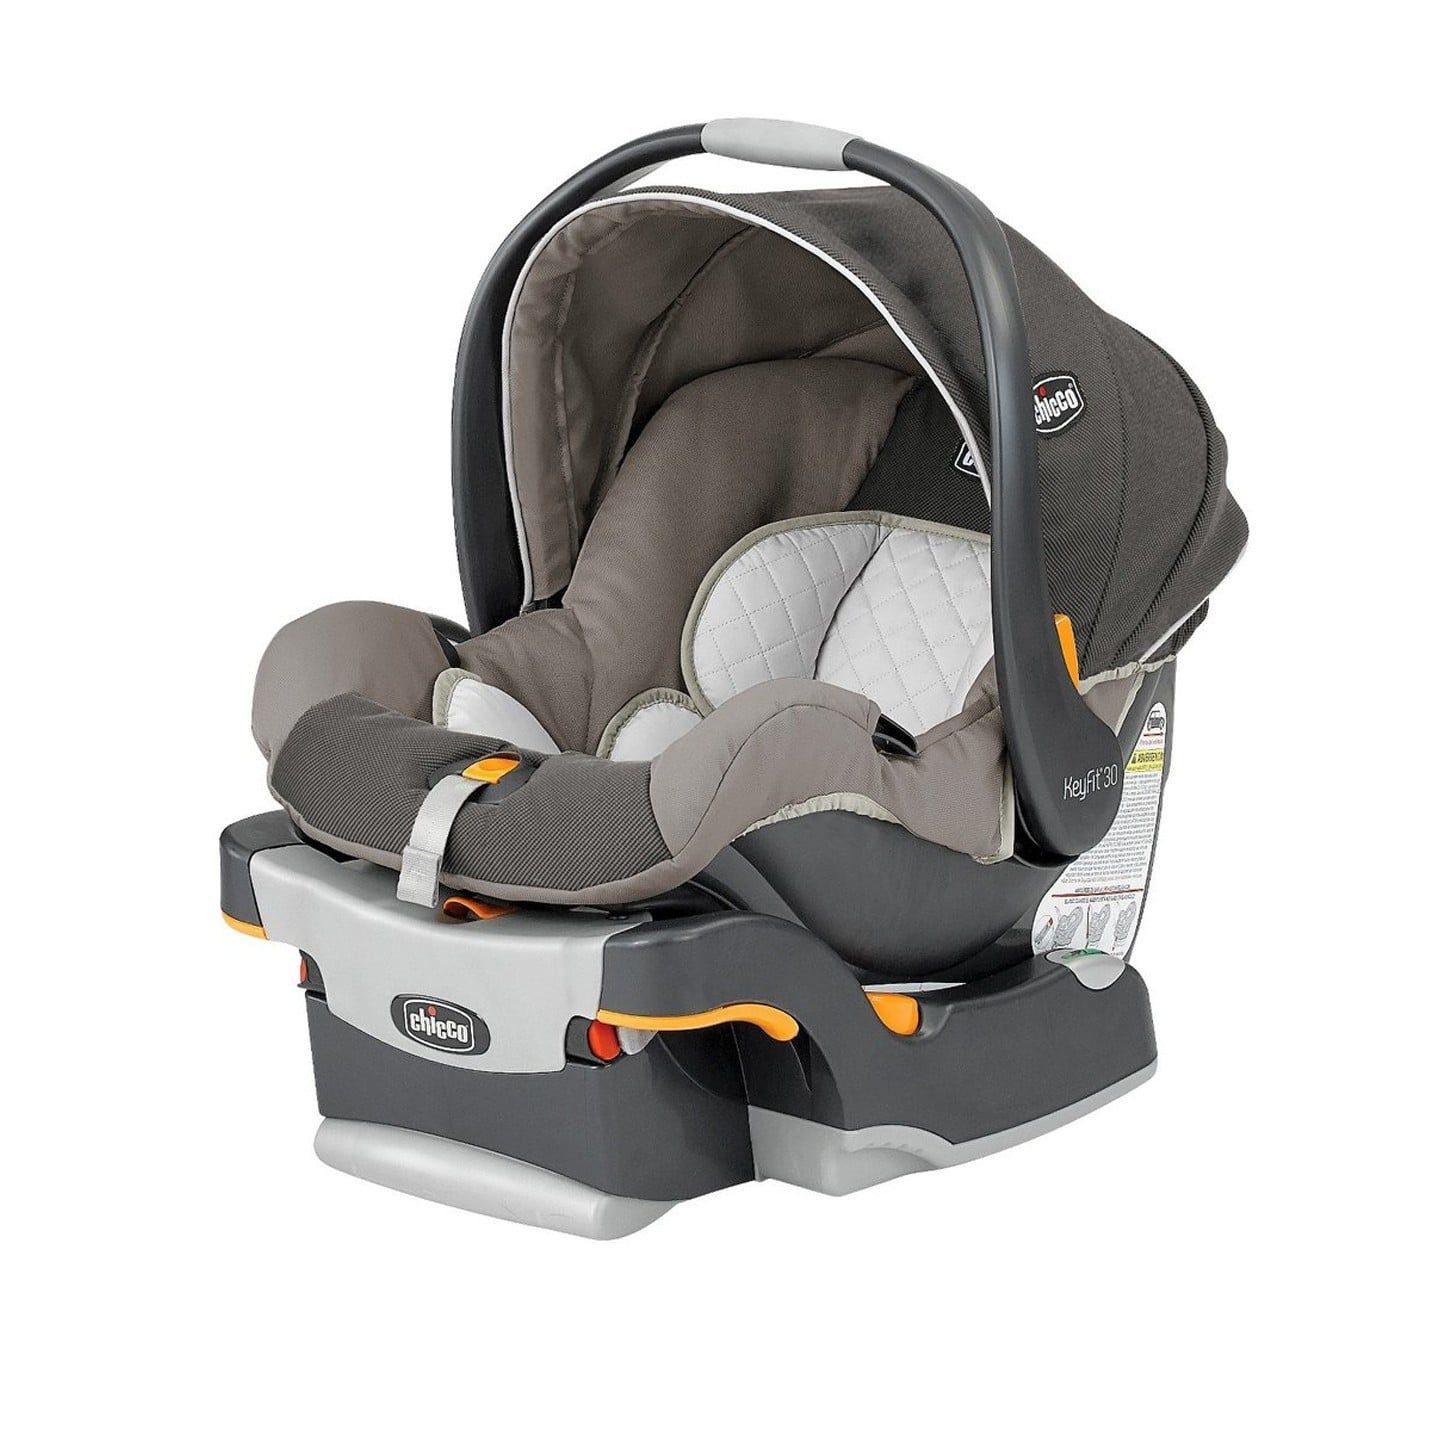 Lightweight Car Seat Baby car seats, Chicco keyfit 30